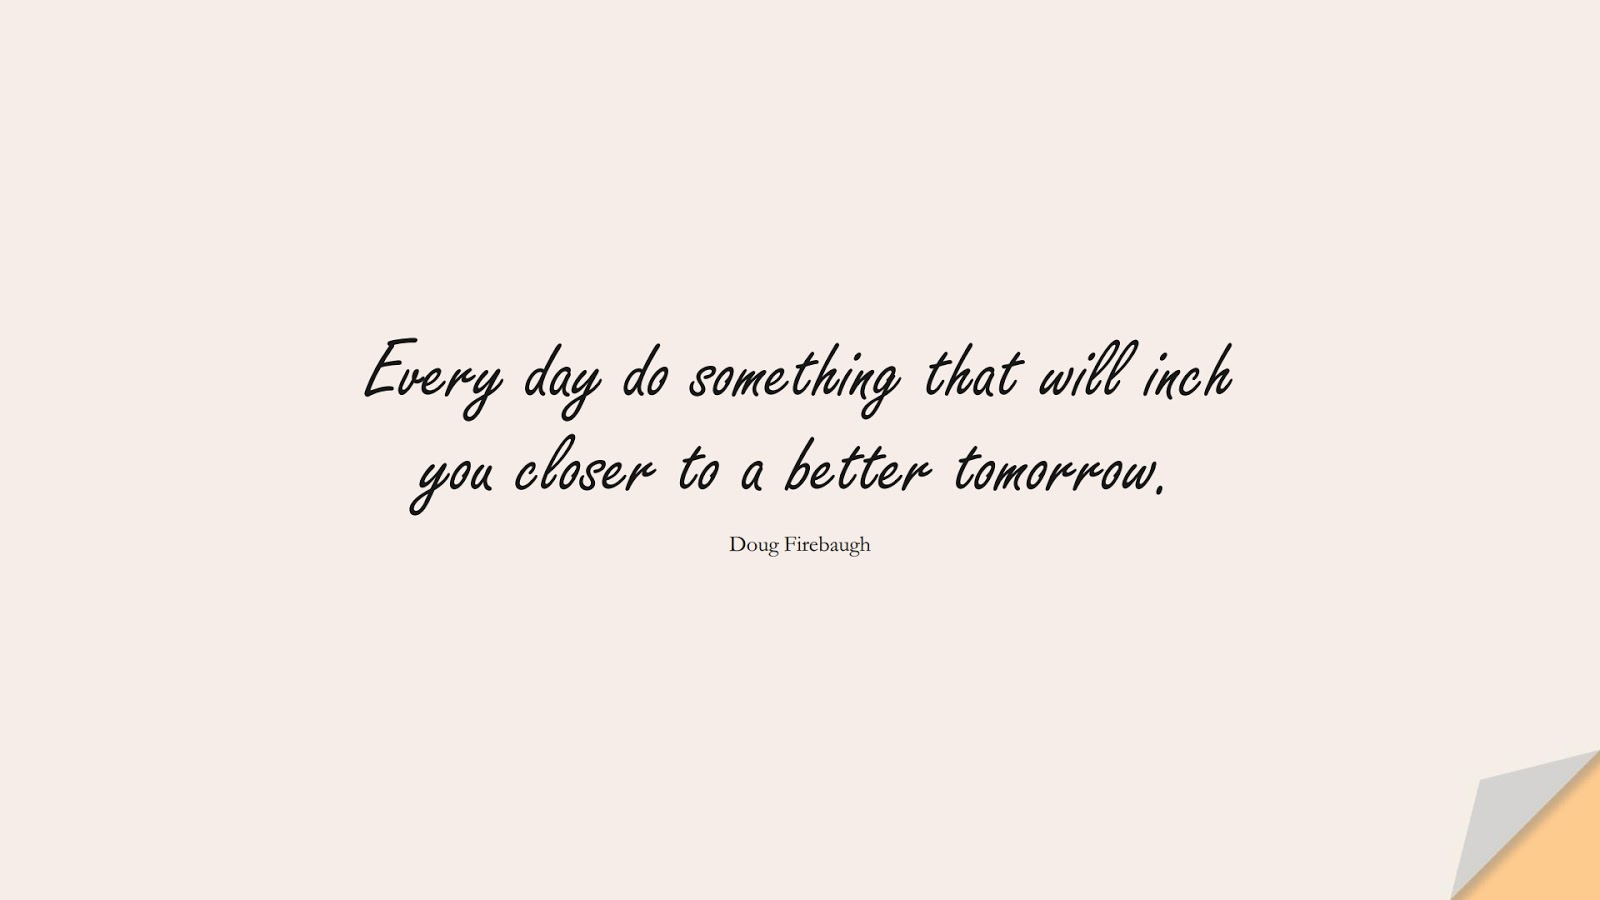 Every day do something that will inch you closer to a better tomorrow. (Doug Firebaugh);  #EncouragingQuotes